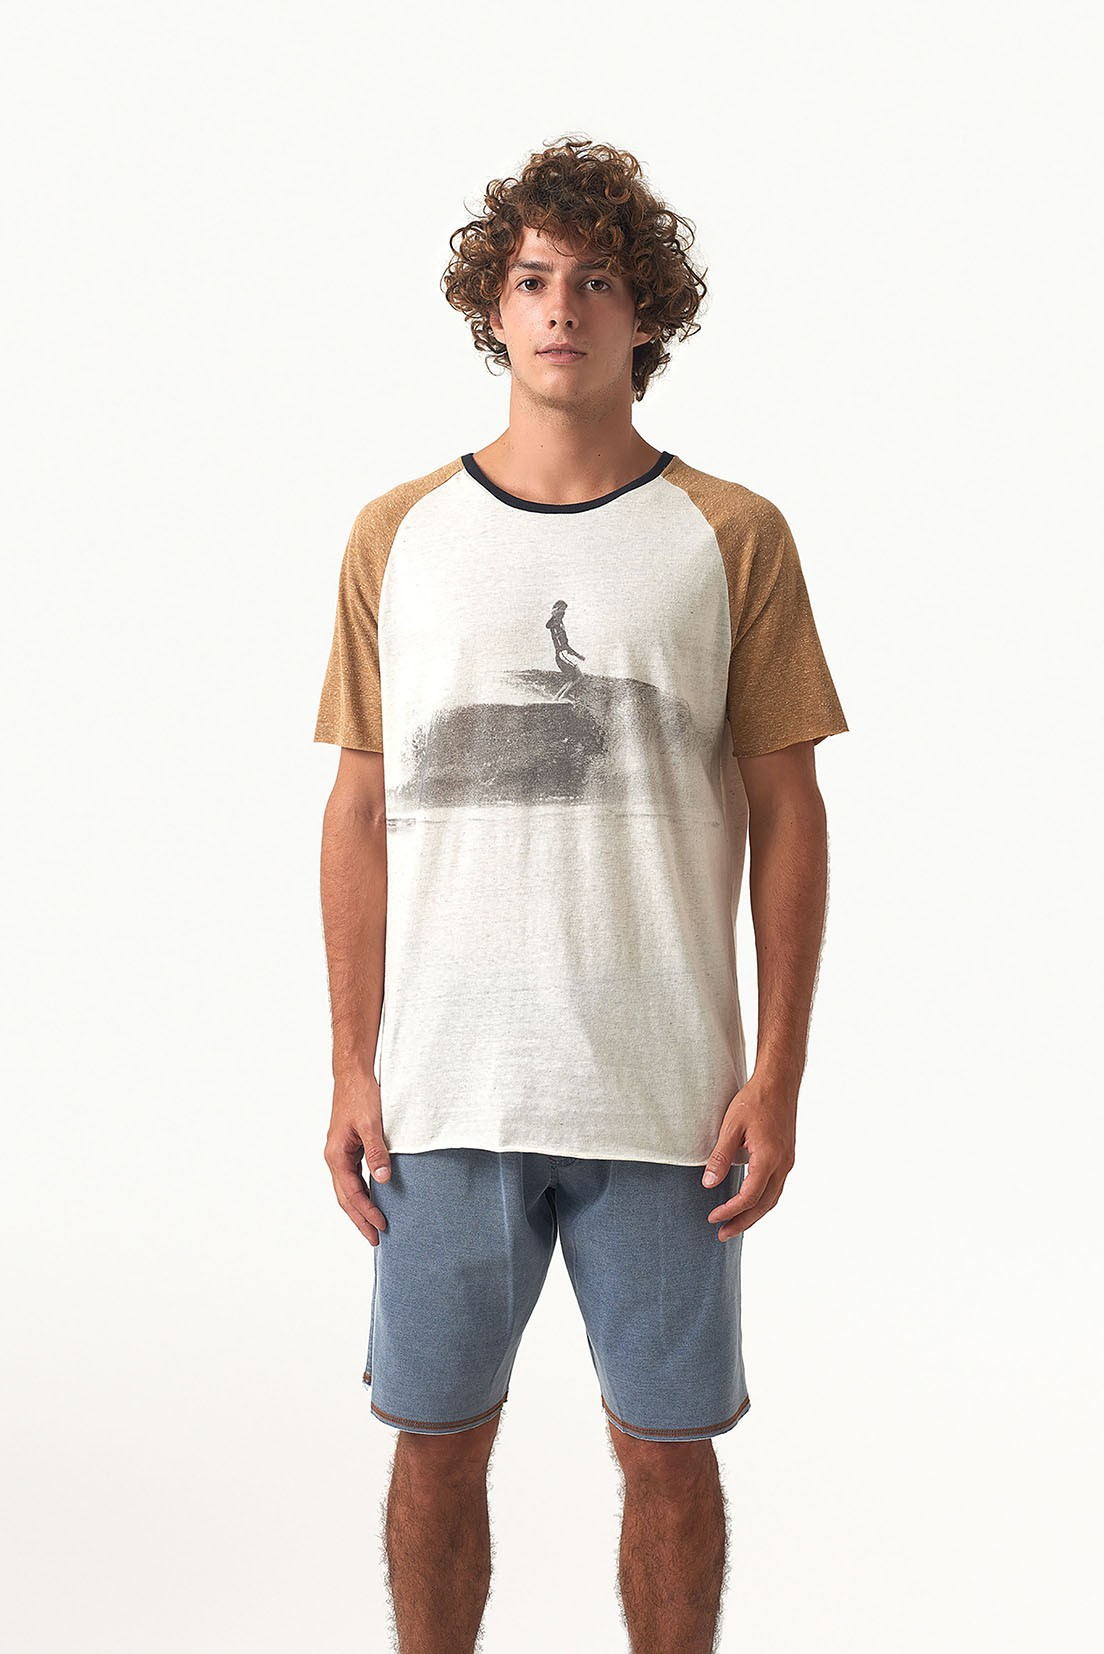 T-Shirt 9 FT melty